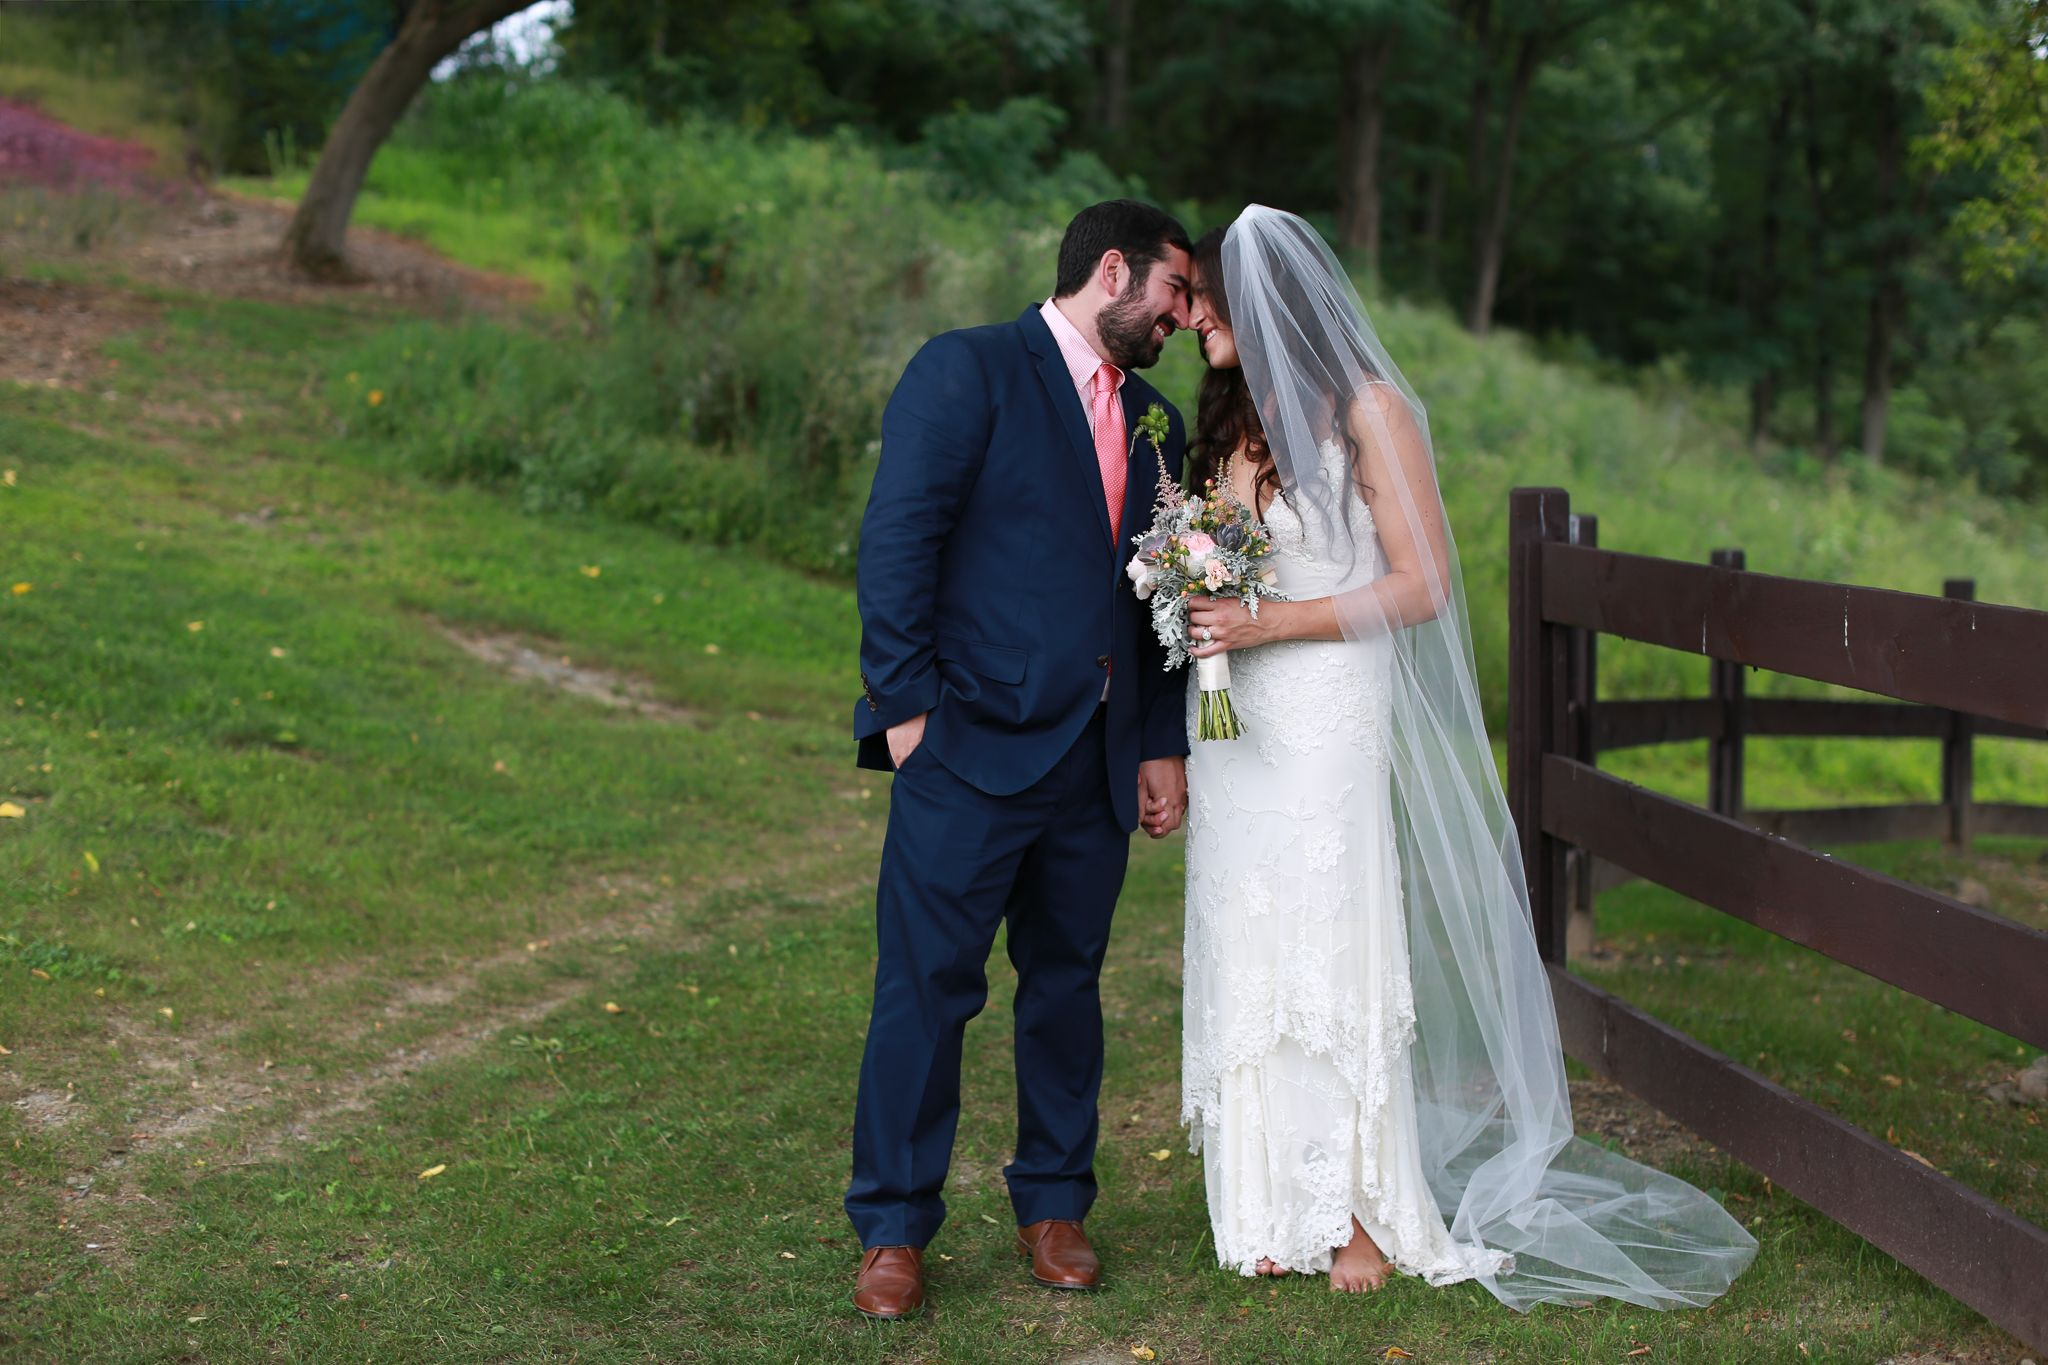 My lil chickpea's Rustic Barn Wedding at Owls Hoot Barn in West Coxsackie, New York